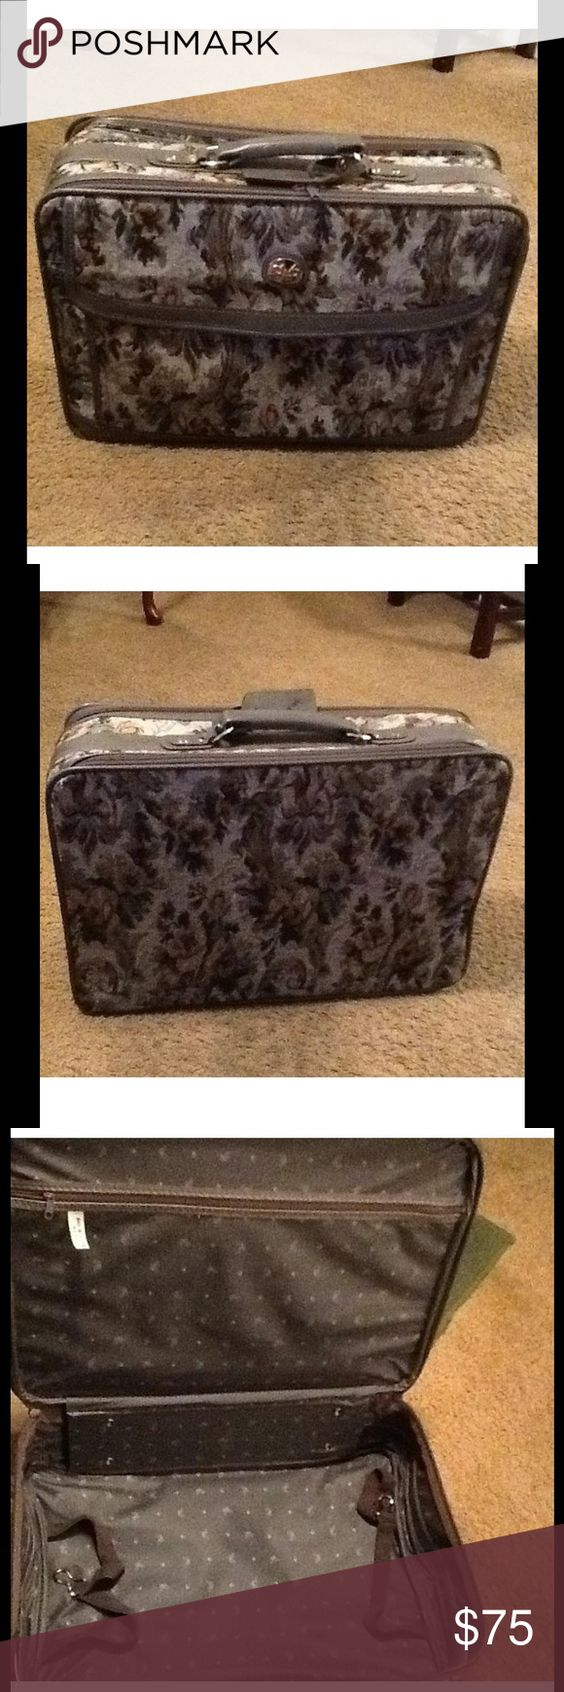 "Vintage Diane Von Furstenberg Luggage Vintage Diane Von Furstenberg Tapestry 20"" luggage. No shoulder strap or small hardware lock. Does have a small fabric pull in the back but it's not noticeable. Diane von Furstenberg Bags Travel Bags"